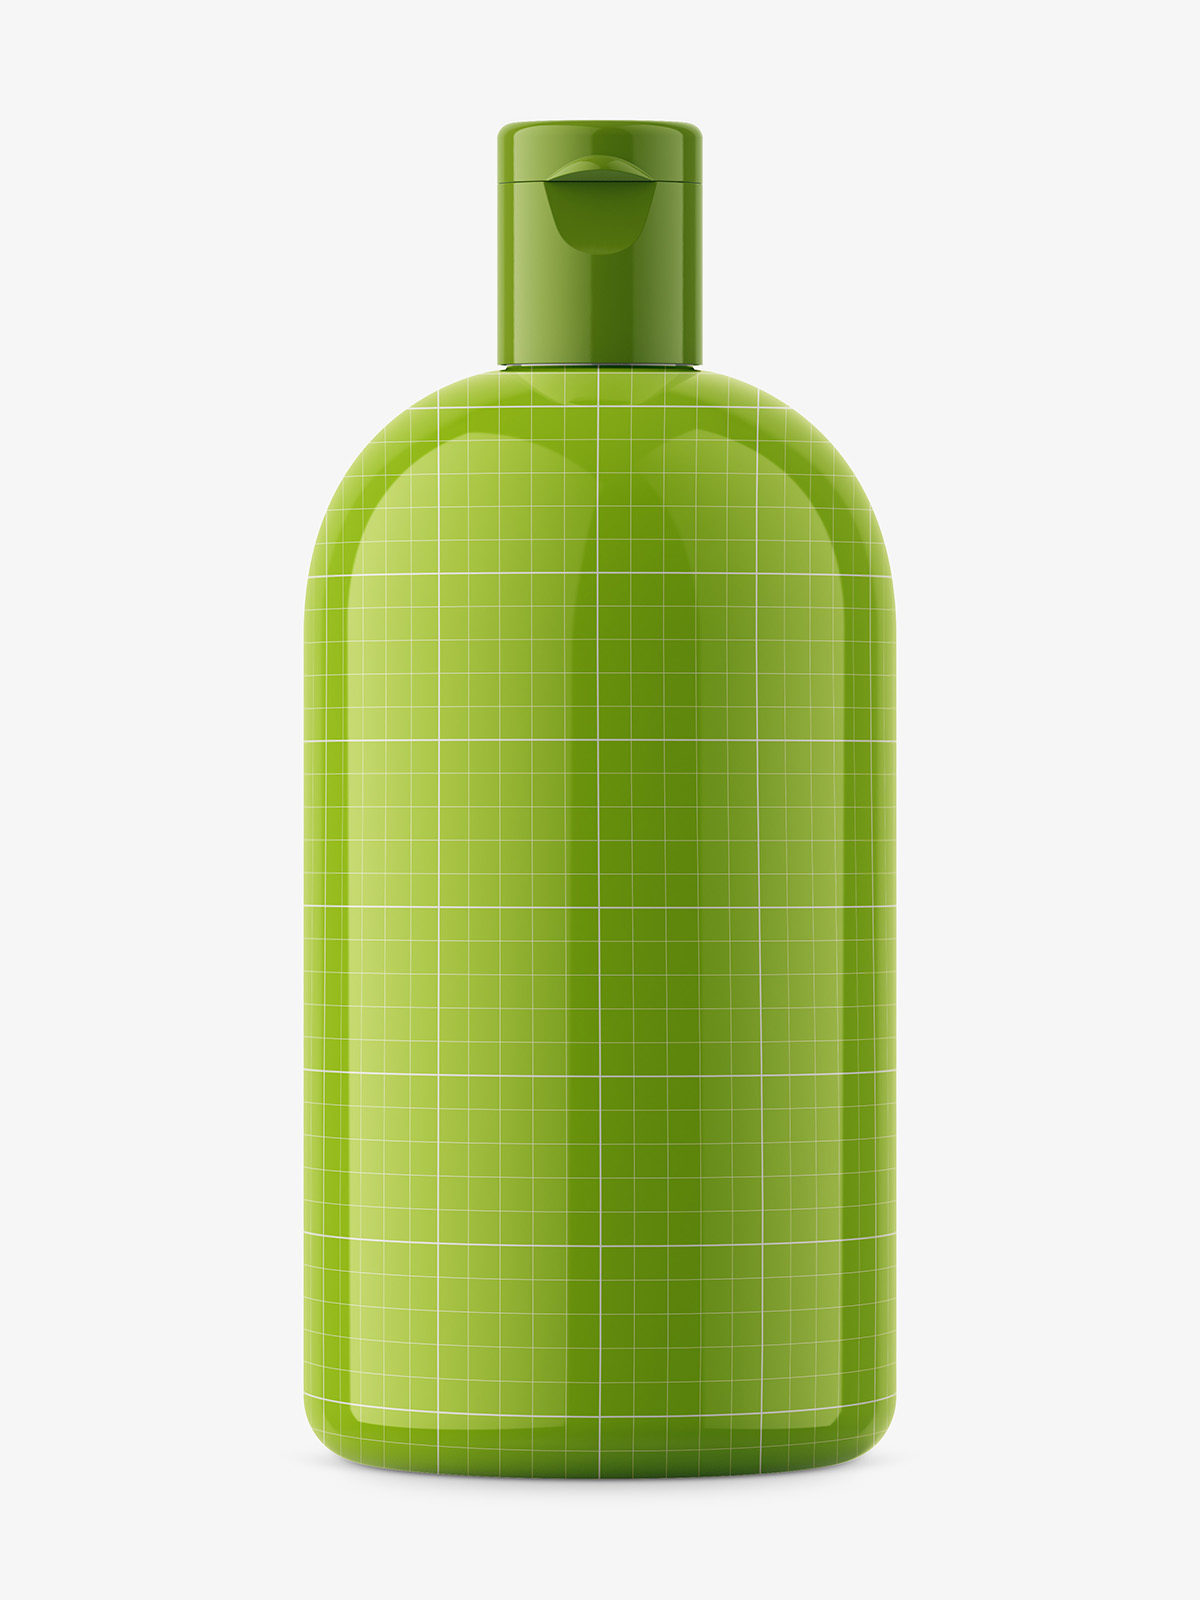 Boston bottle mockup / glossy